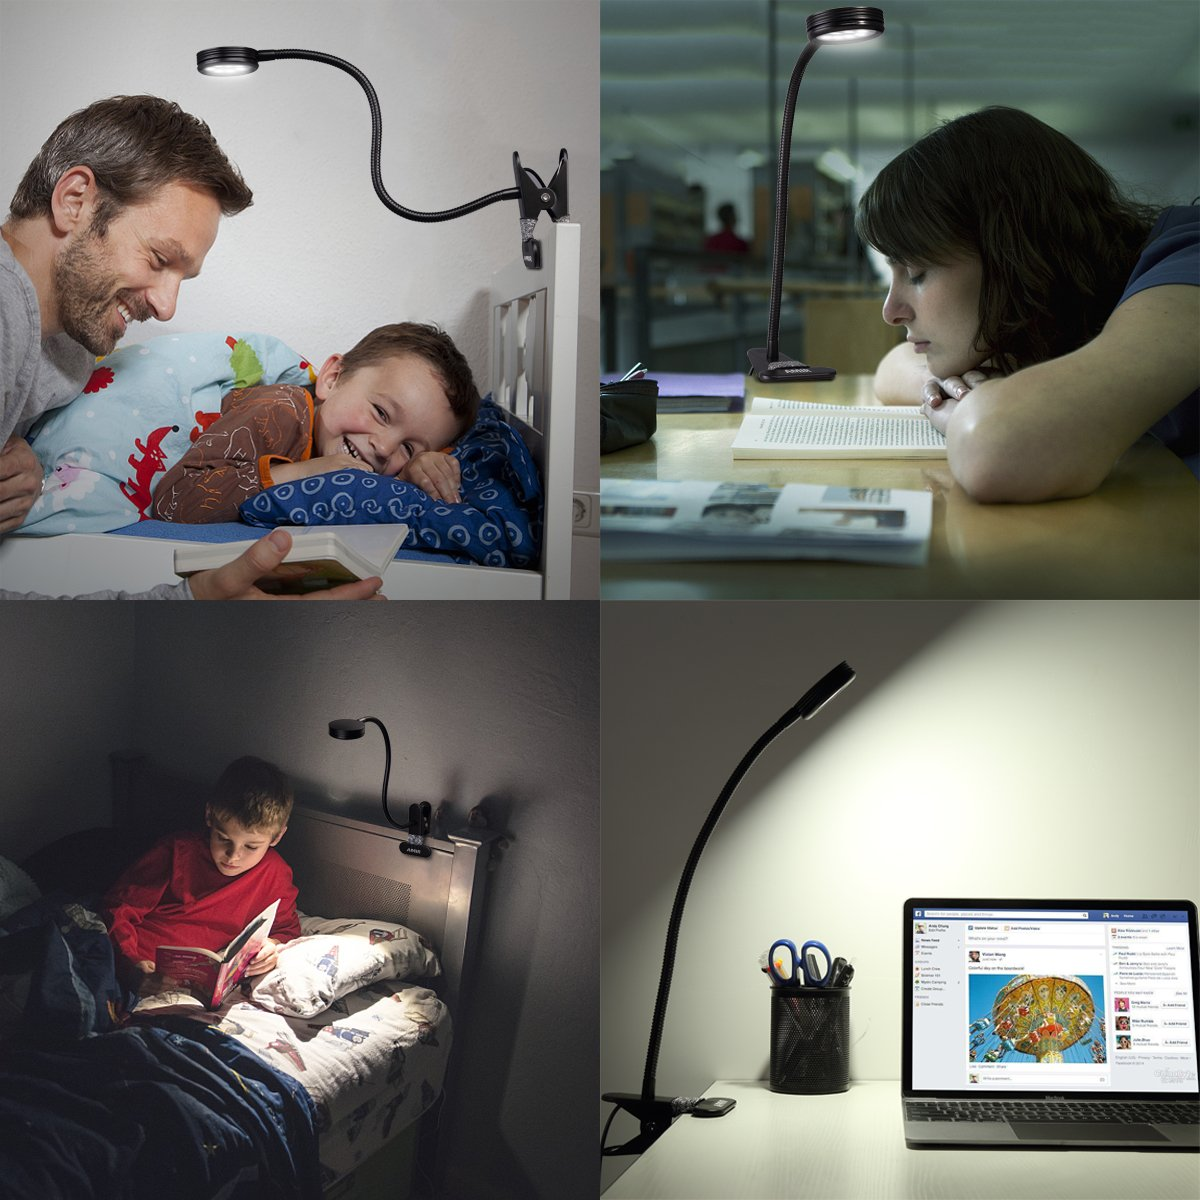 Case of 60 Packs,AMIR Clip on Book Light, Eye Care Reading Light, 2-Level Dimmer & 2-Mode Light Color Switchable with Flexible Arm (Need Plugged in to Work, AC Adapter Not Included) by AMIR (Image #6)